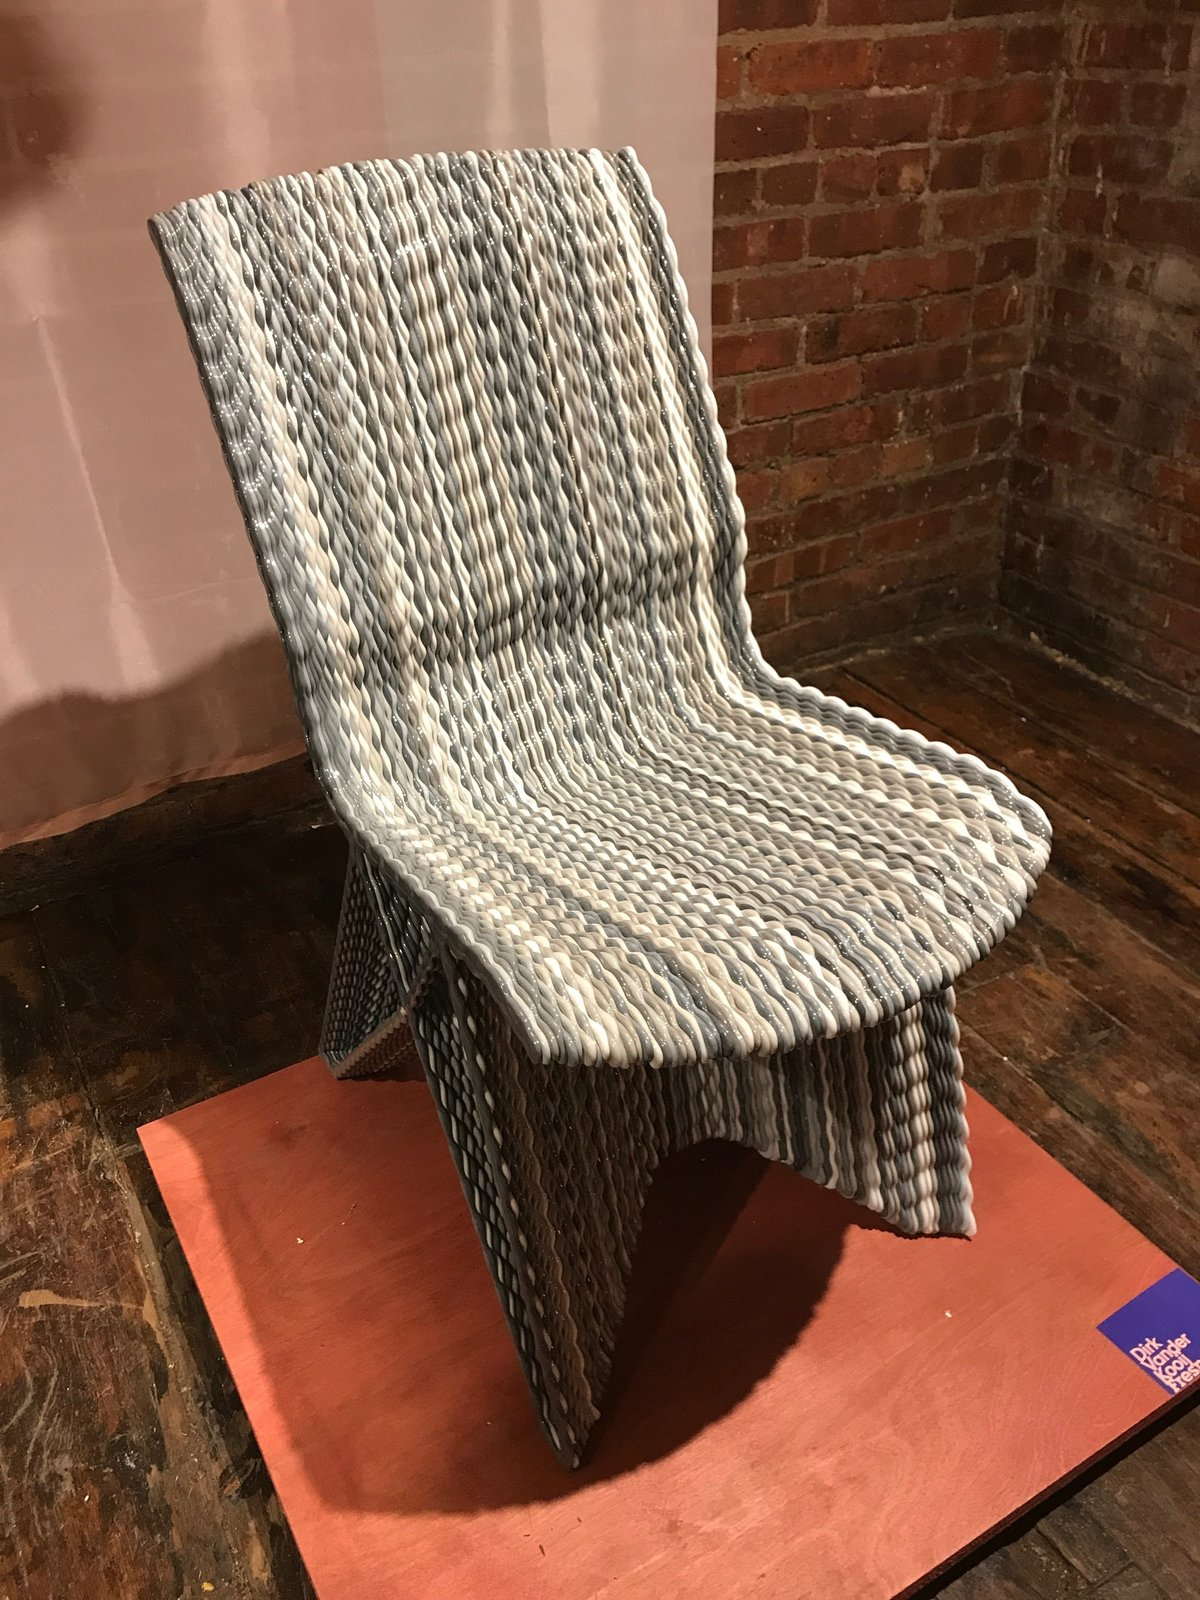 At Wanted, Dutch designer Dirk Van Der Kooij displayed his new 3D-printed chair made of recycled refrigerator plastic parts. The Best of New York Design Week 2017 - Photo 25 of 36